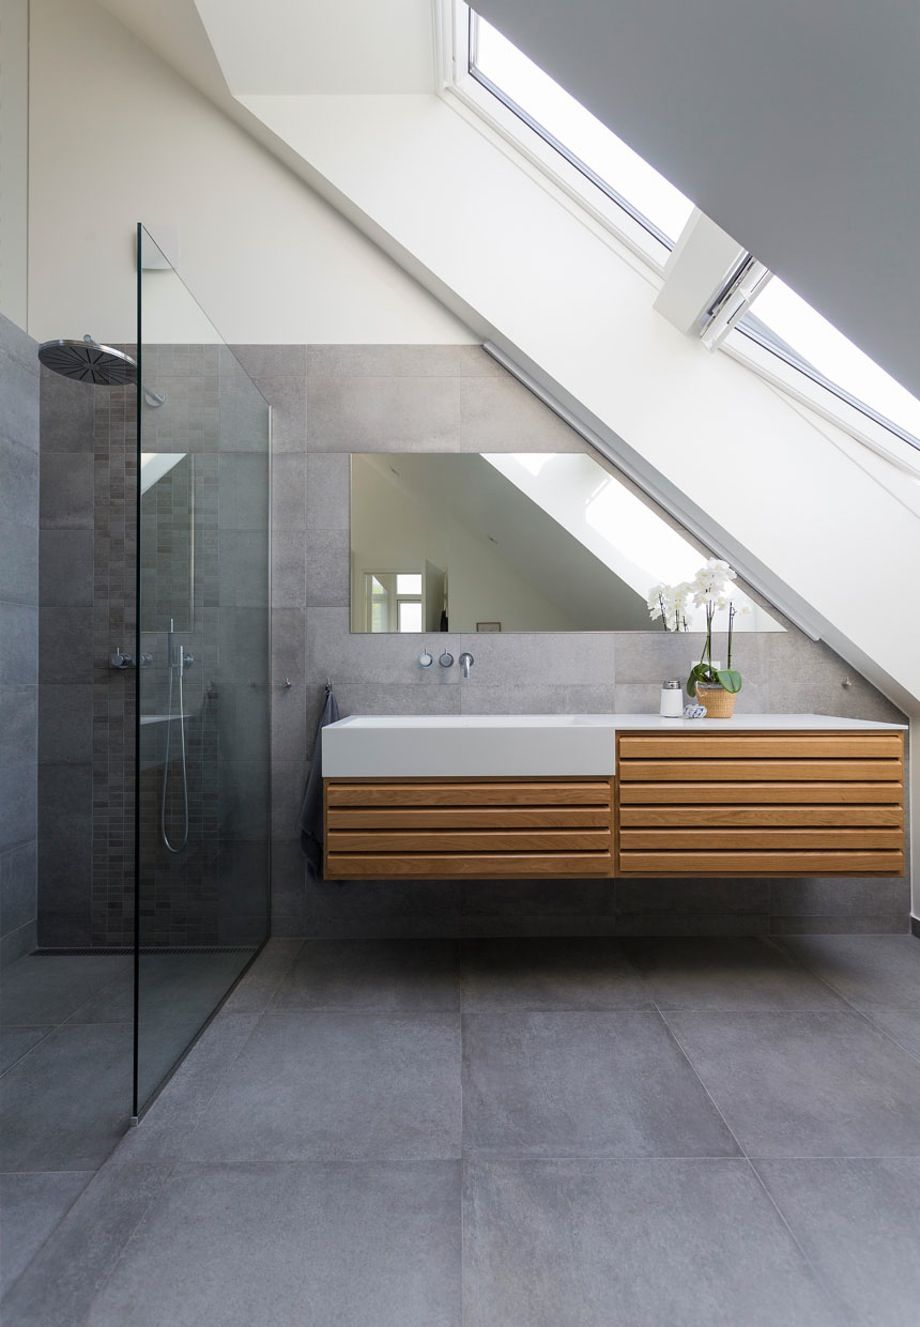 Modern Bathroom With Large Concrete Tiles On The Floor And Walls